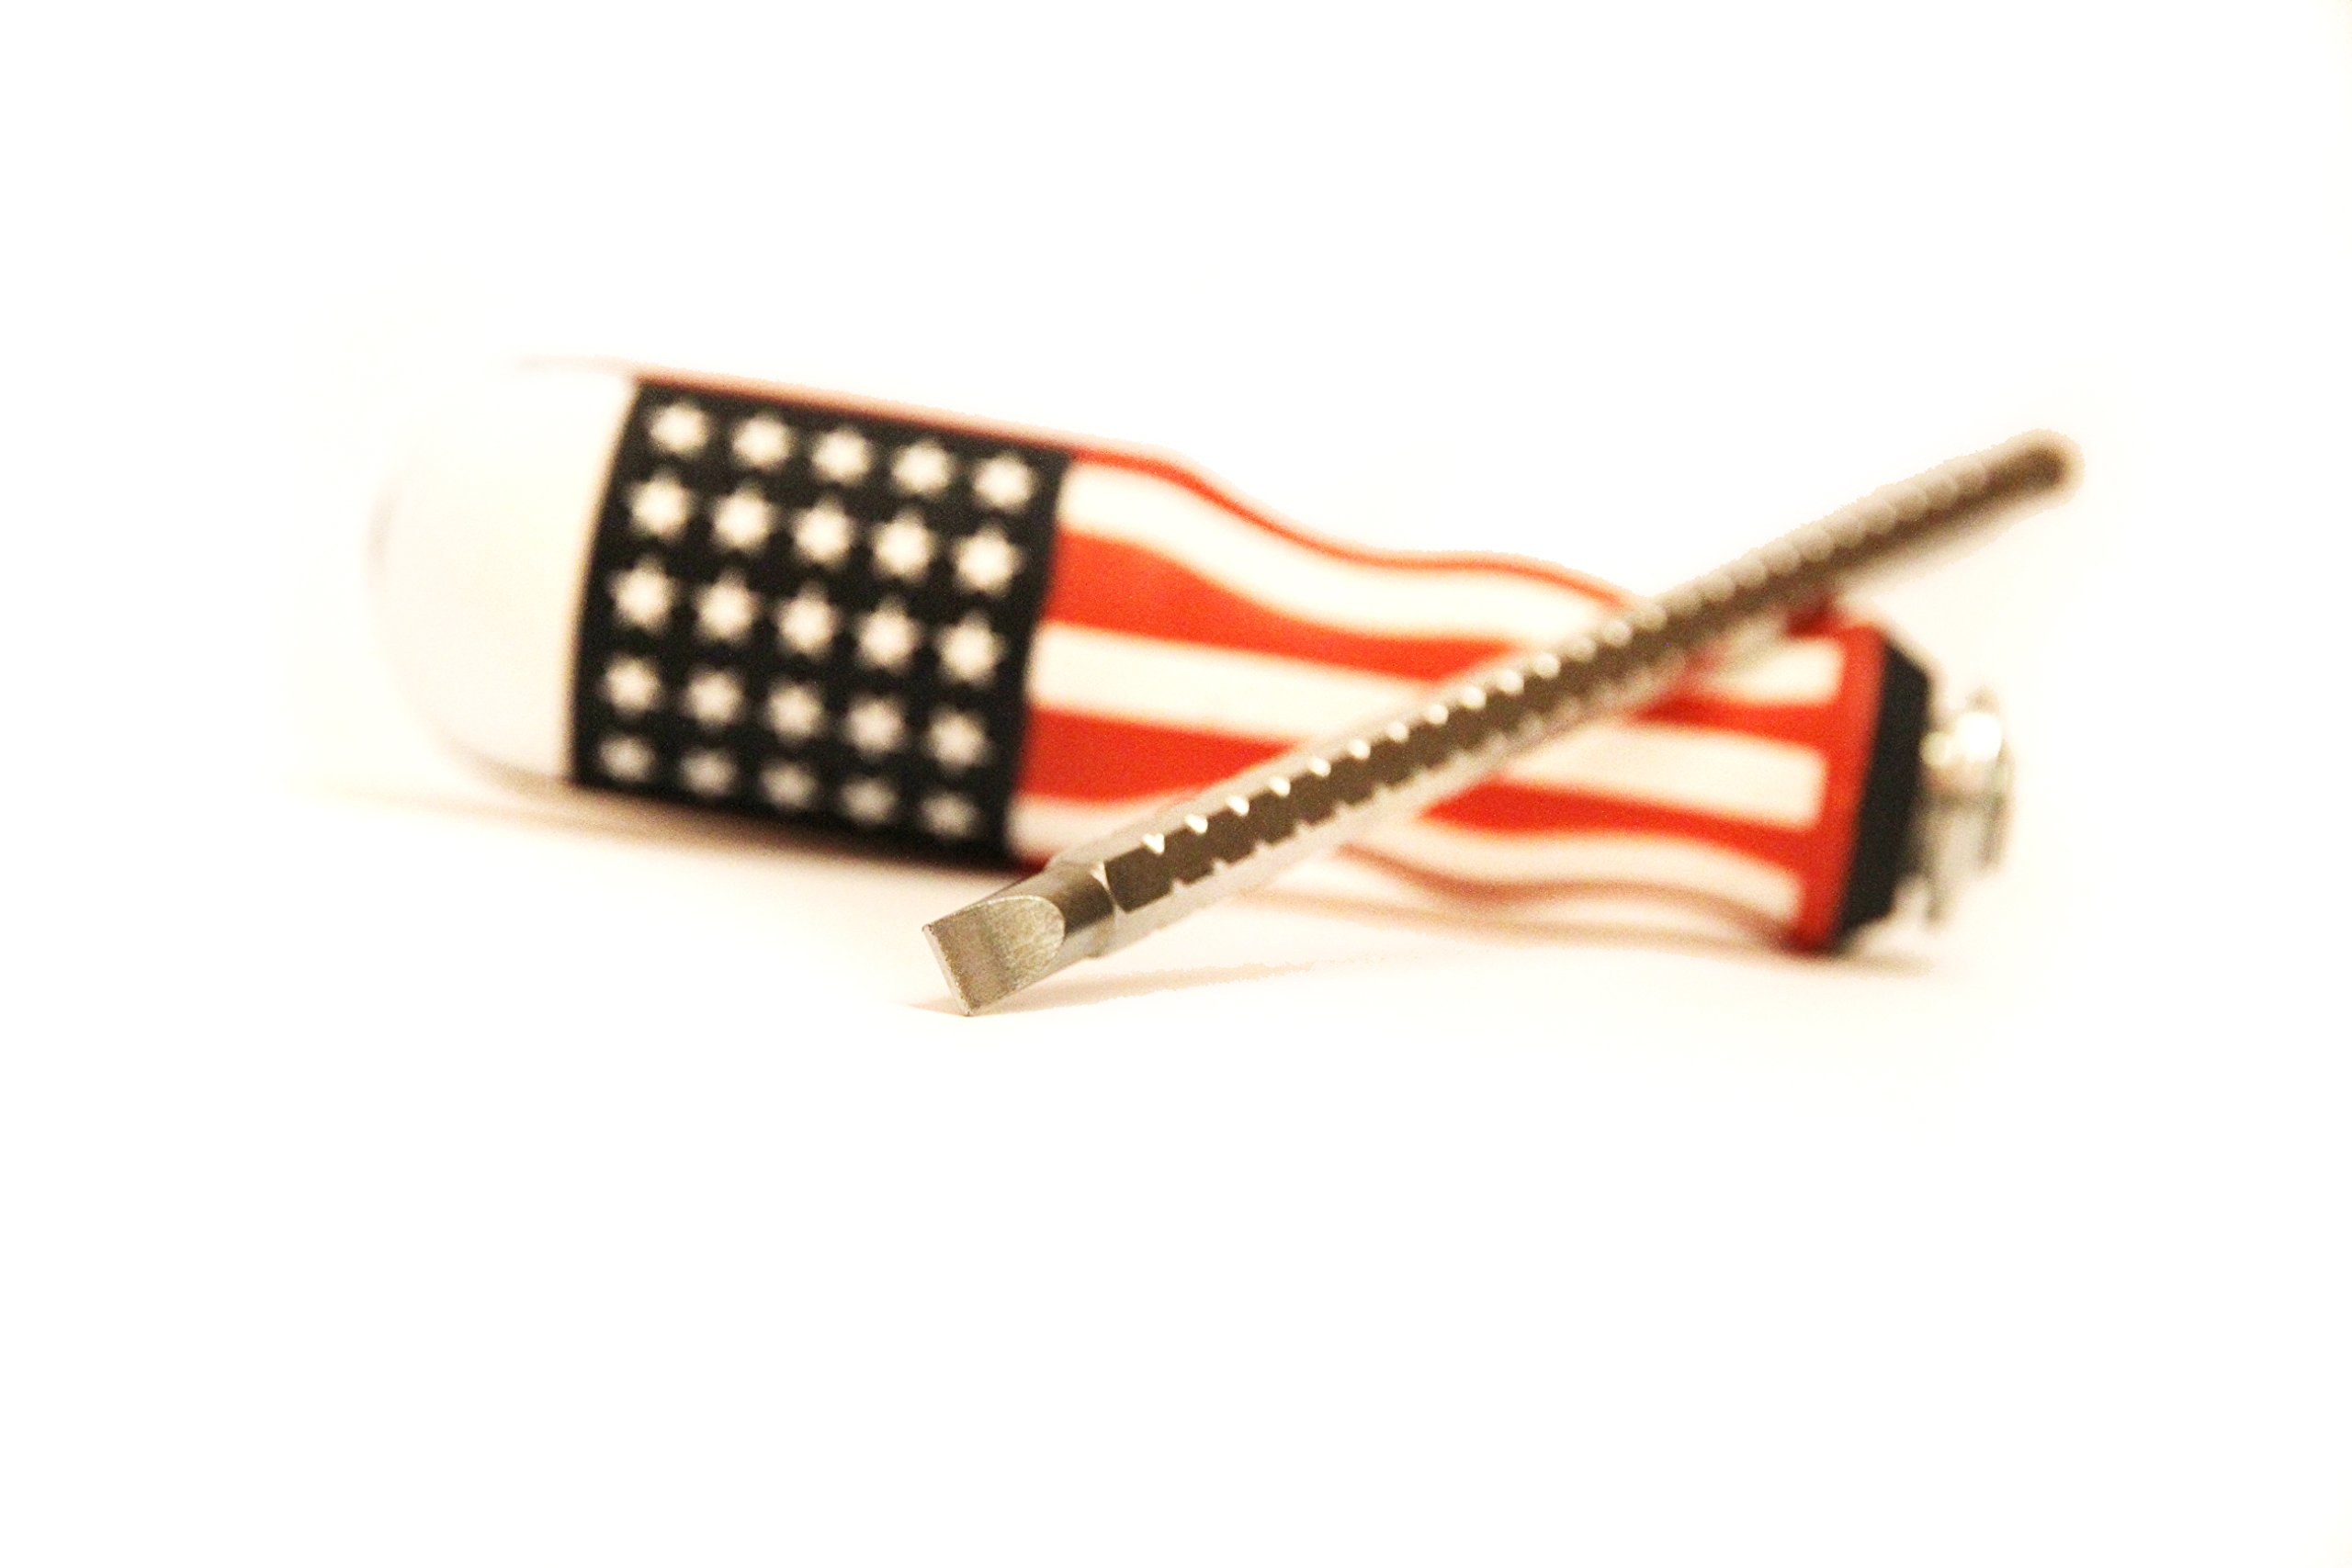 USA Screwdriver 2-in-One Combinations - Flat & Phillips Screwdriver Heads, Magnetic Tips, Heavy Duty Grip Home & Professional Use - American Flag Theme By Steel & Wood US Tools by Steel & Wood US Tools (Image #6)